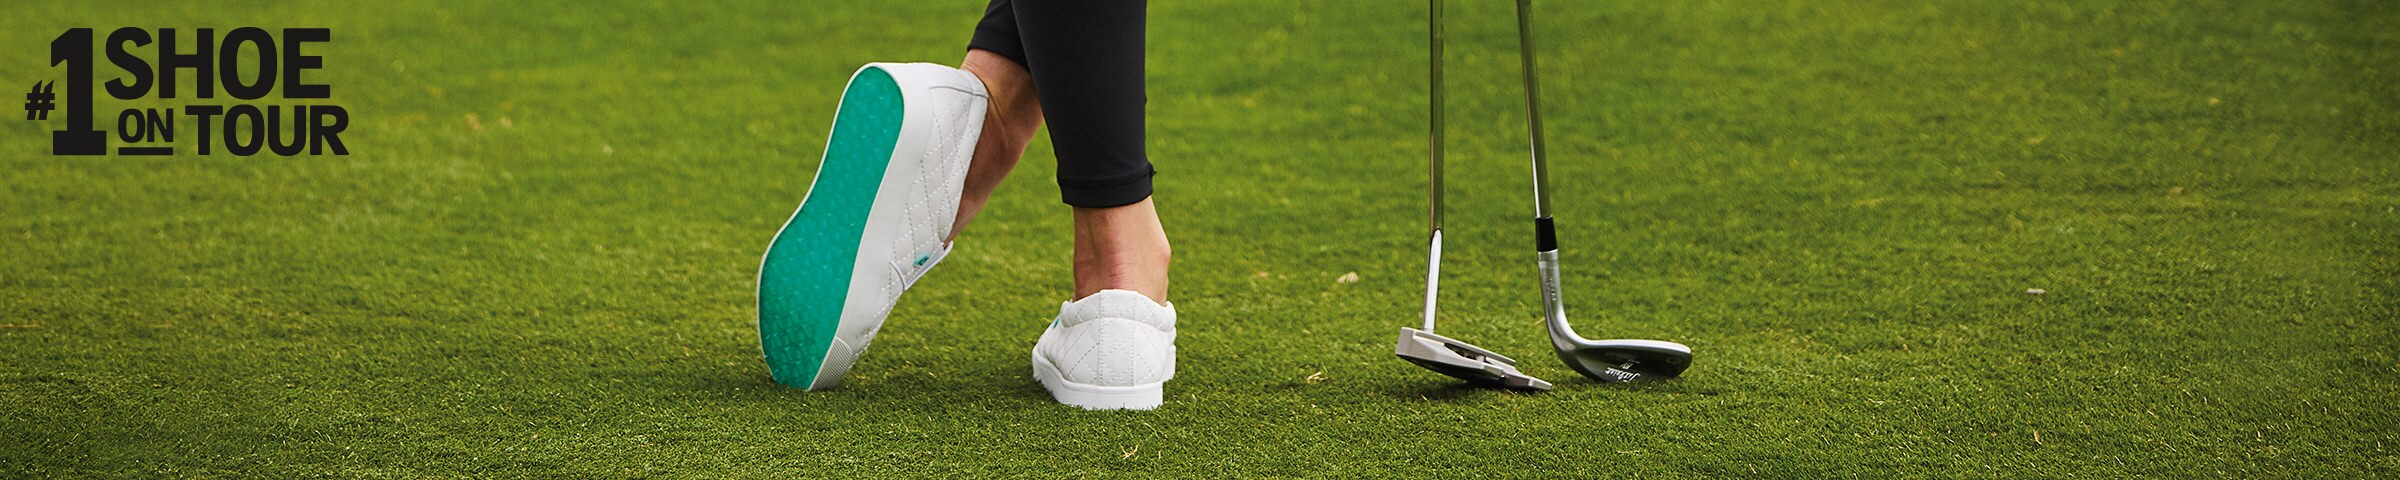 FootJoy Women's SpikelessGolf Shoes